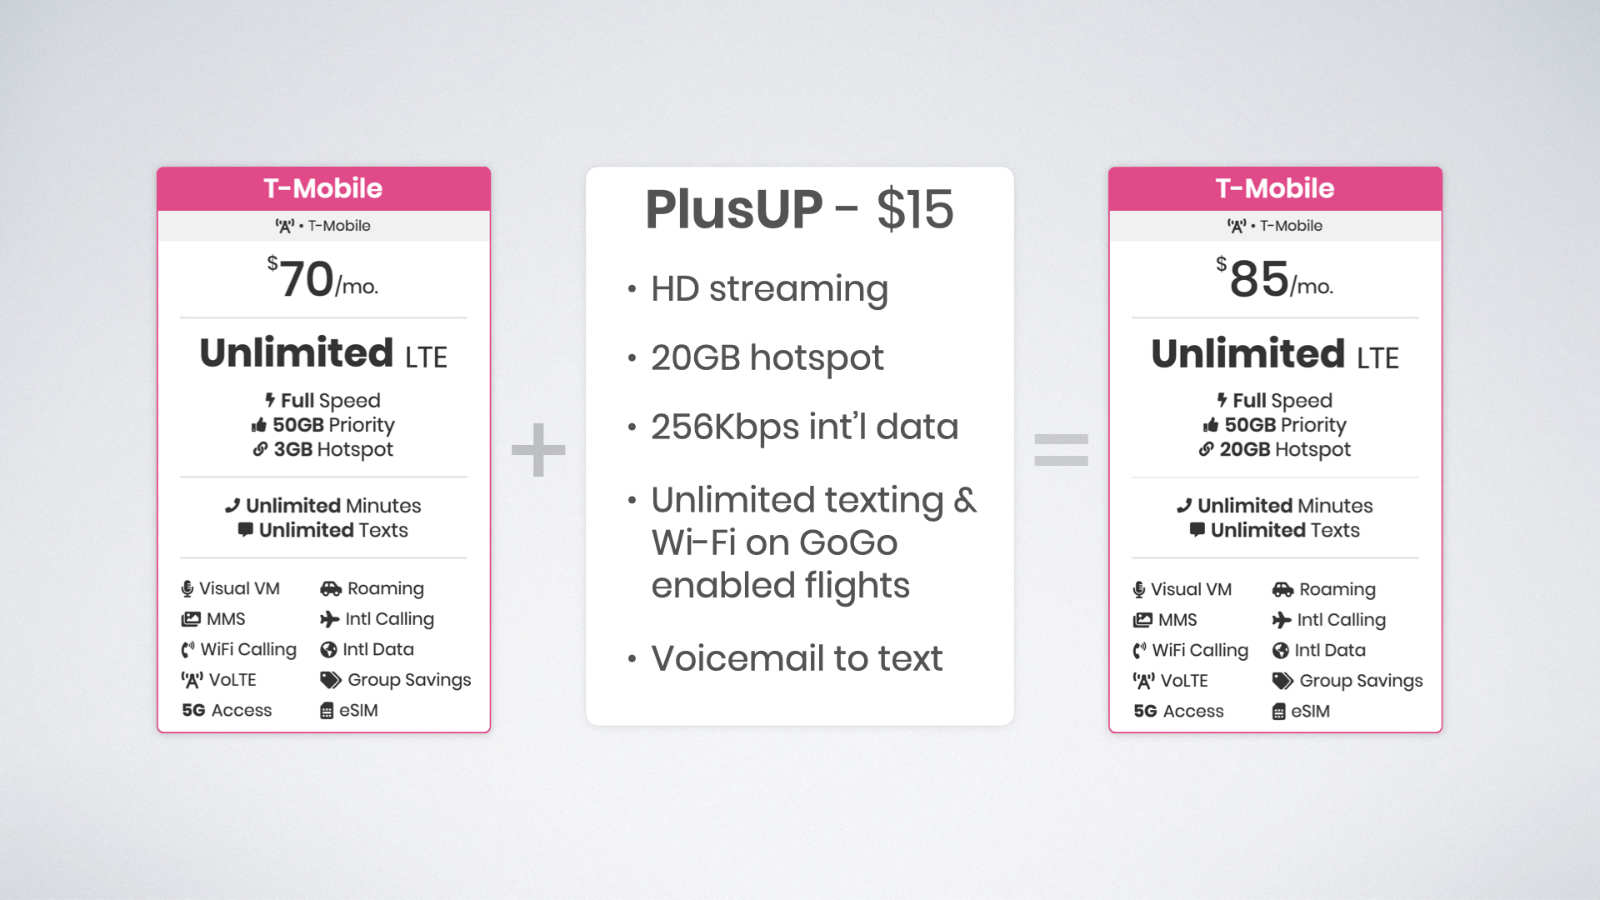 Magenta Plus is the Magenta plan bundled with the PlusUP add-on